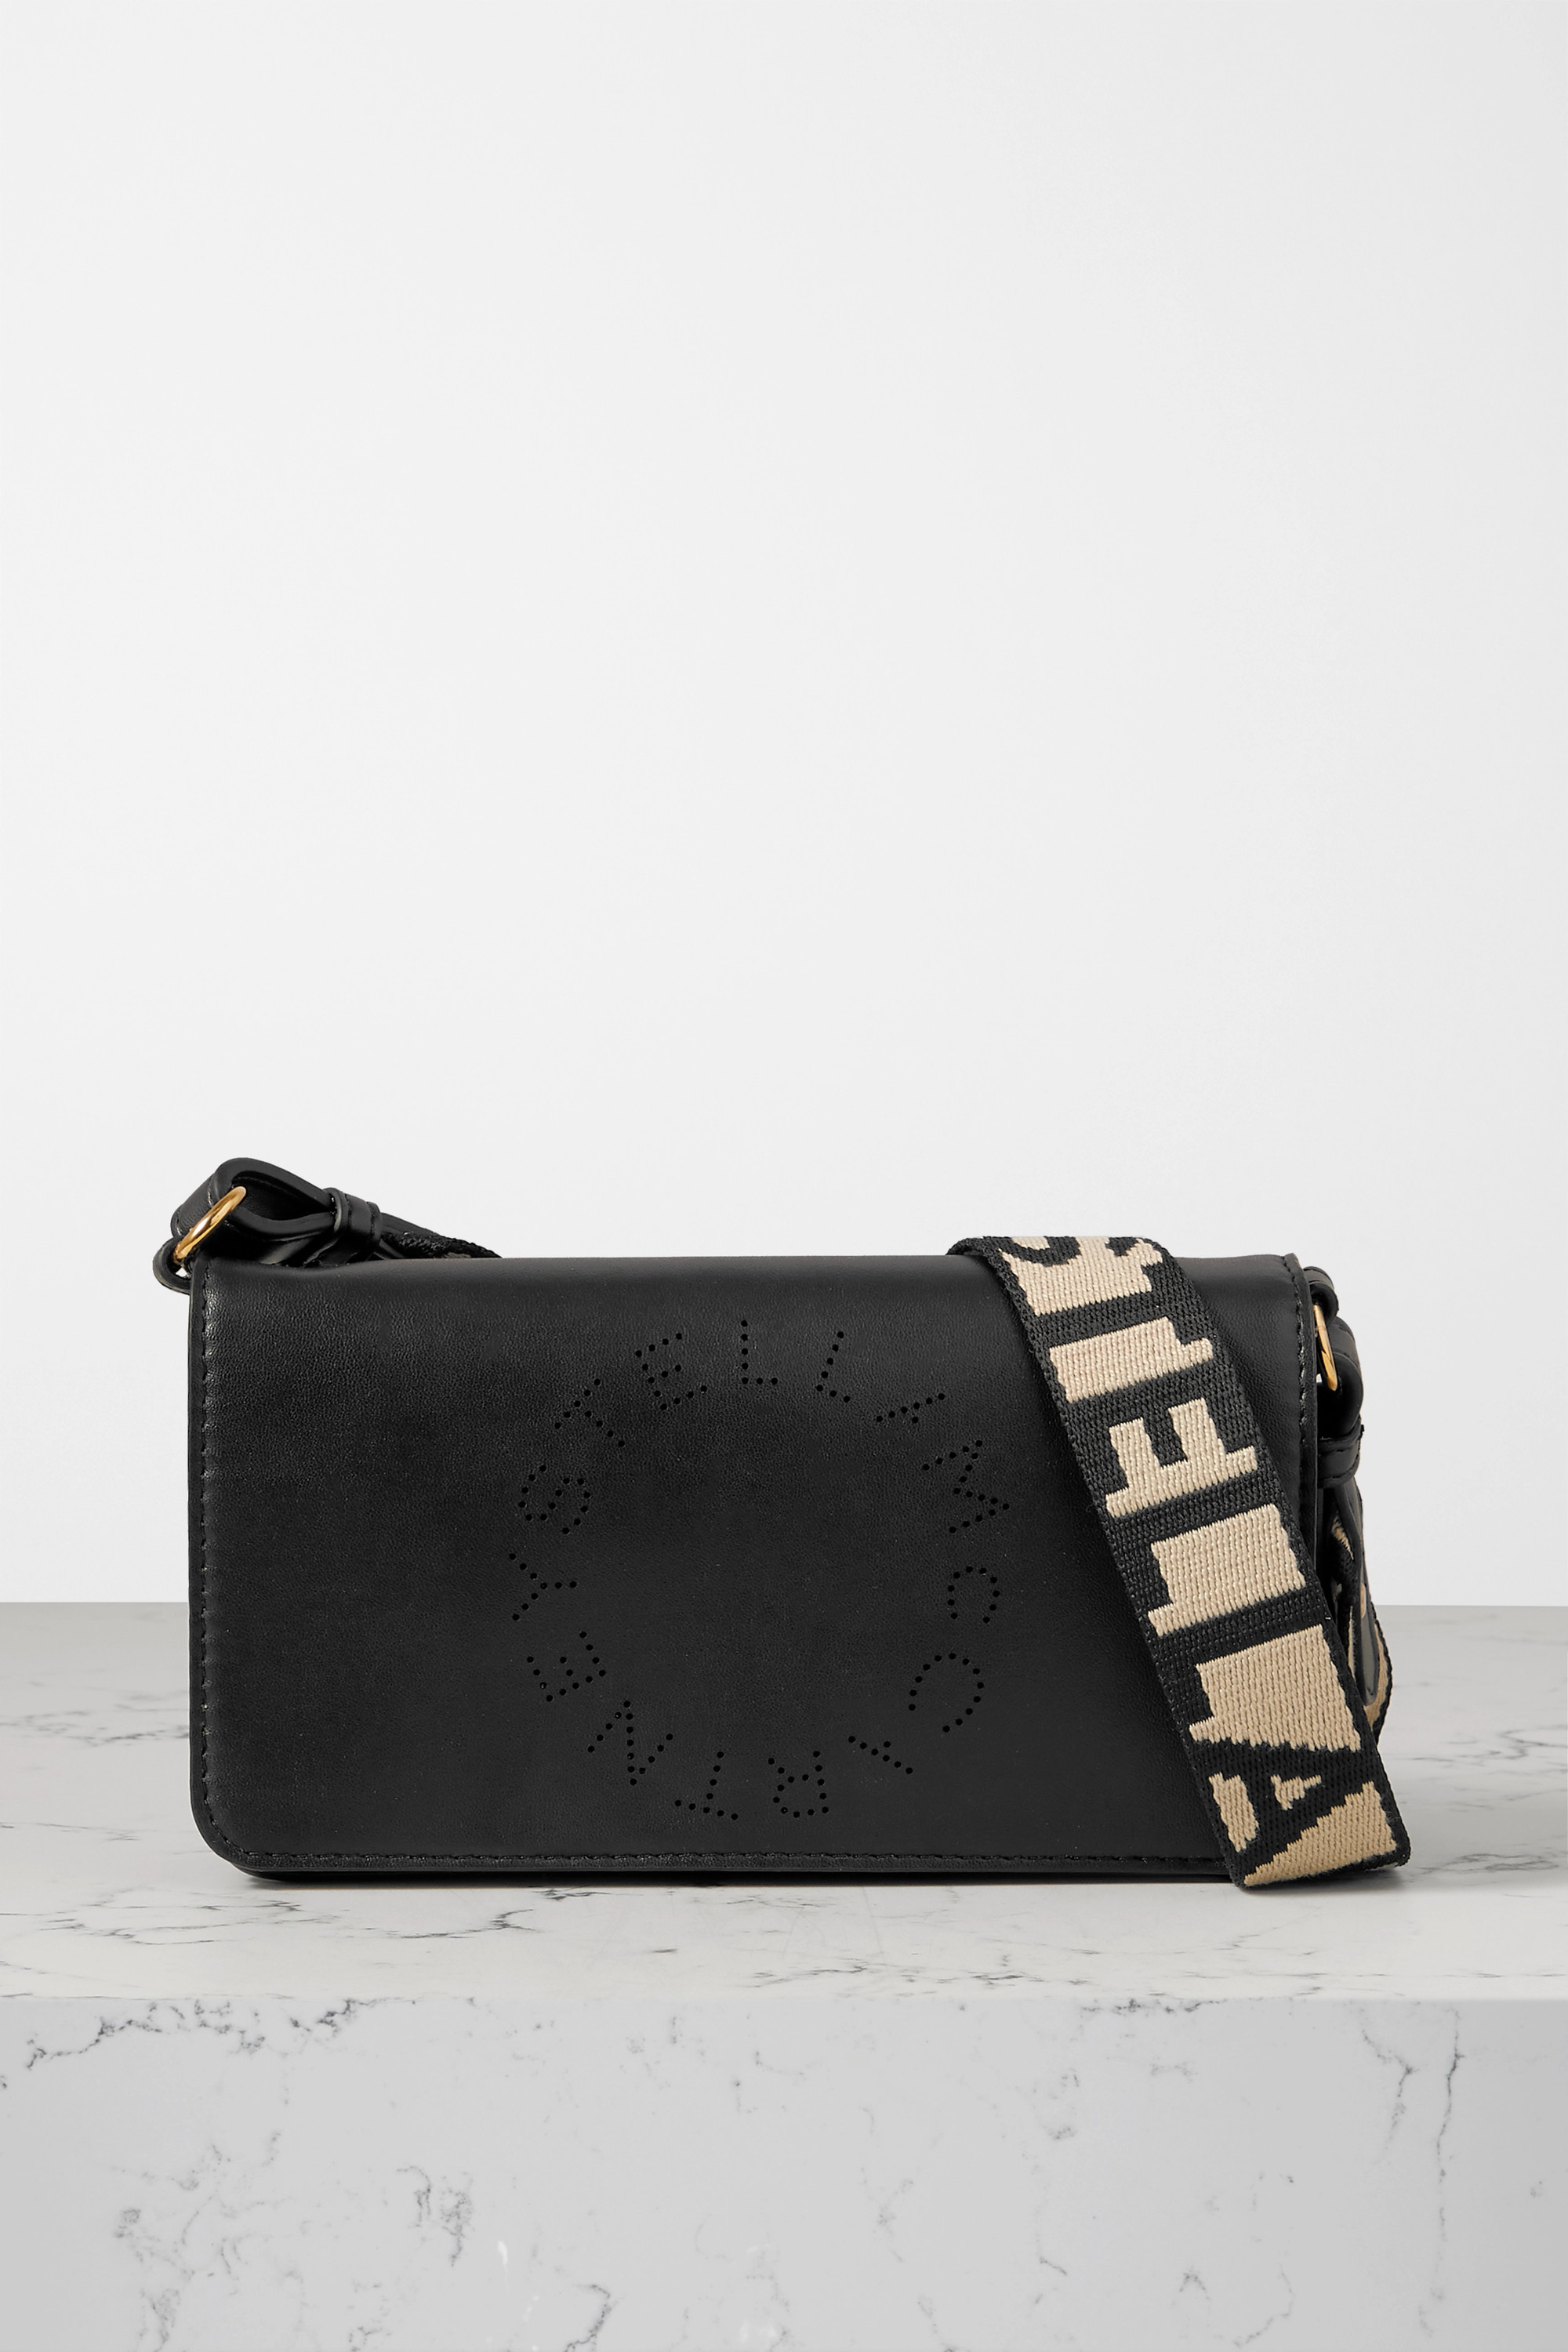 Stella McCartney Perforated vegetarian leather shoulder bag